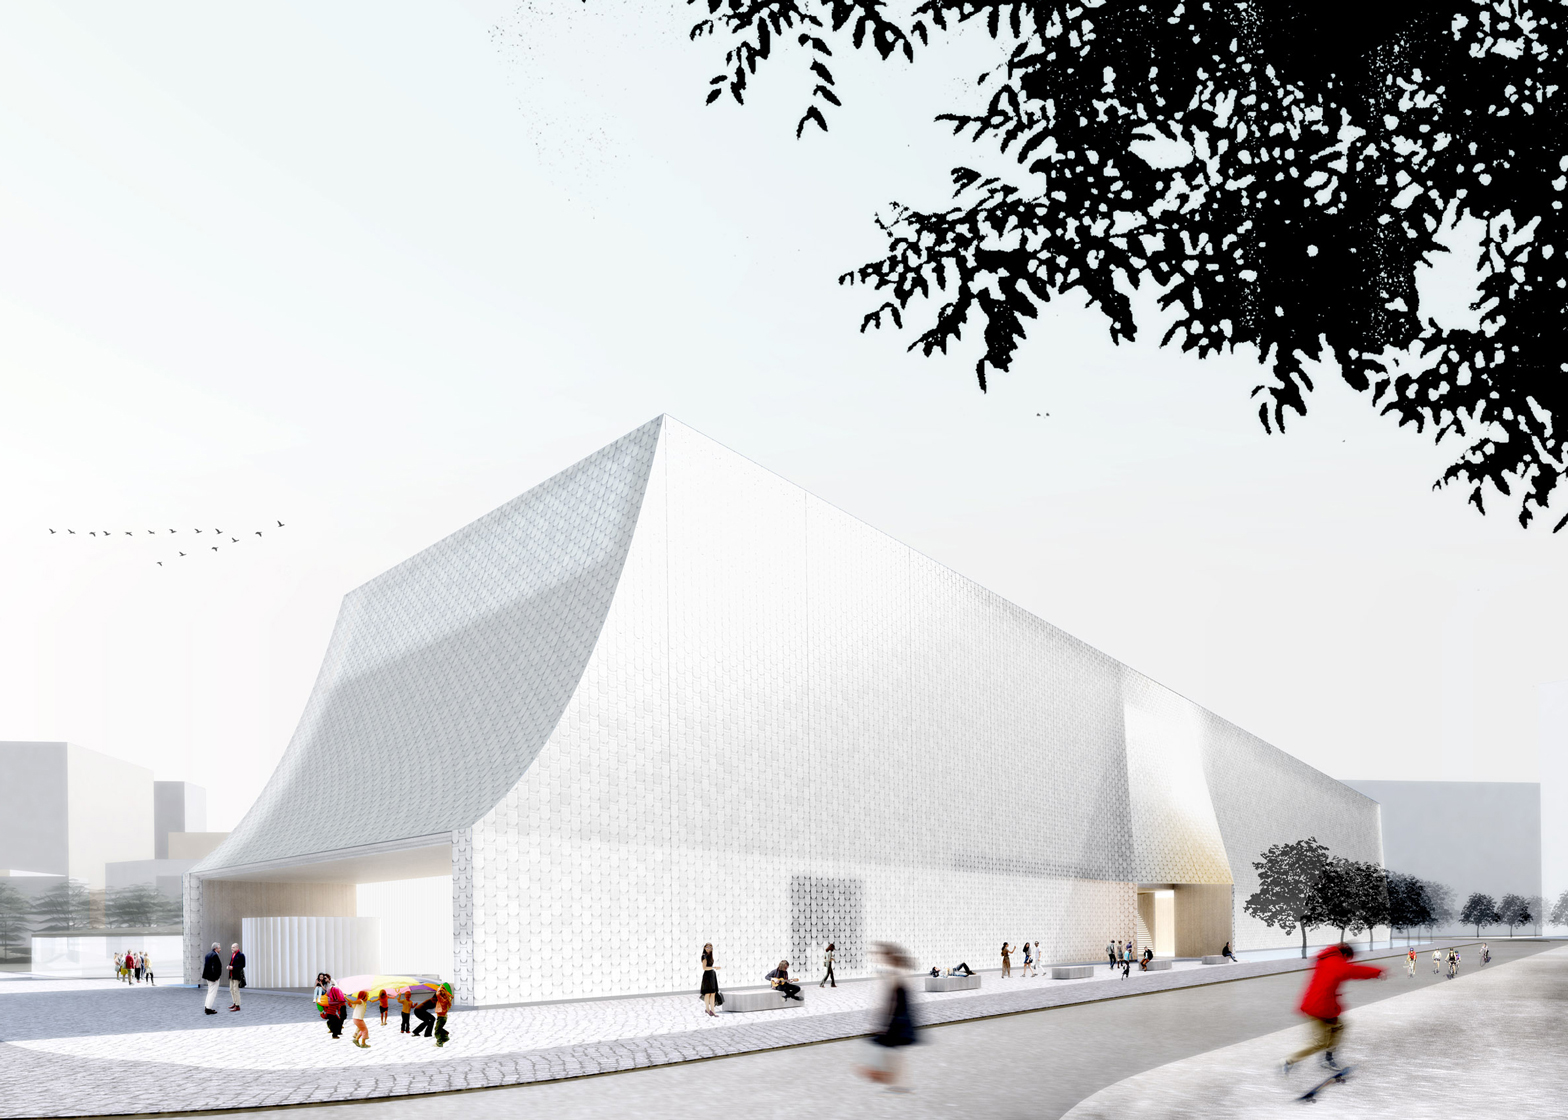 Designs by Adjaye and Henning Larsen revealed on Latvian Museum of Contemporary Art shortlist